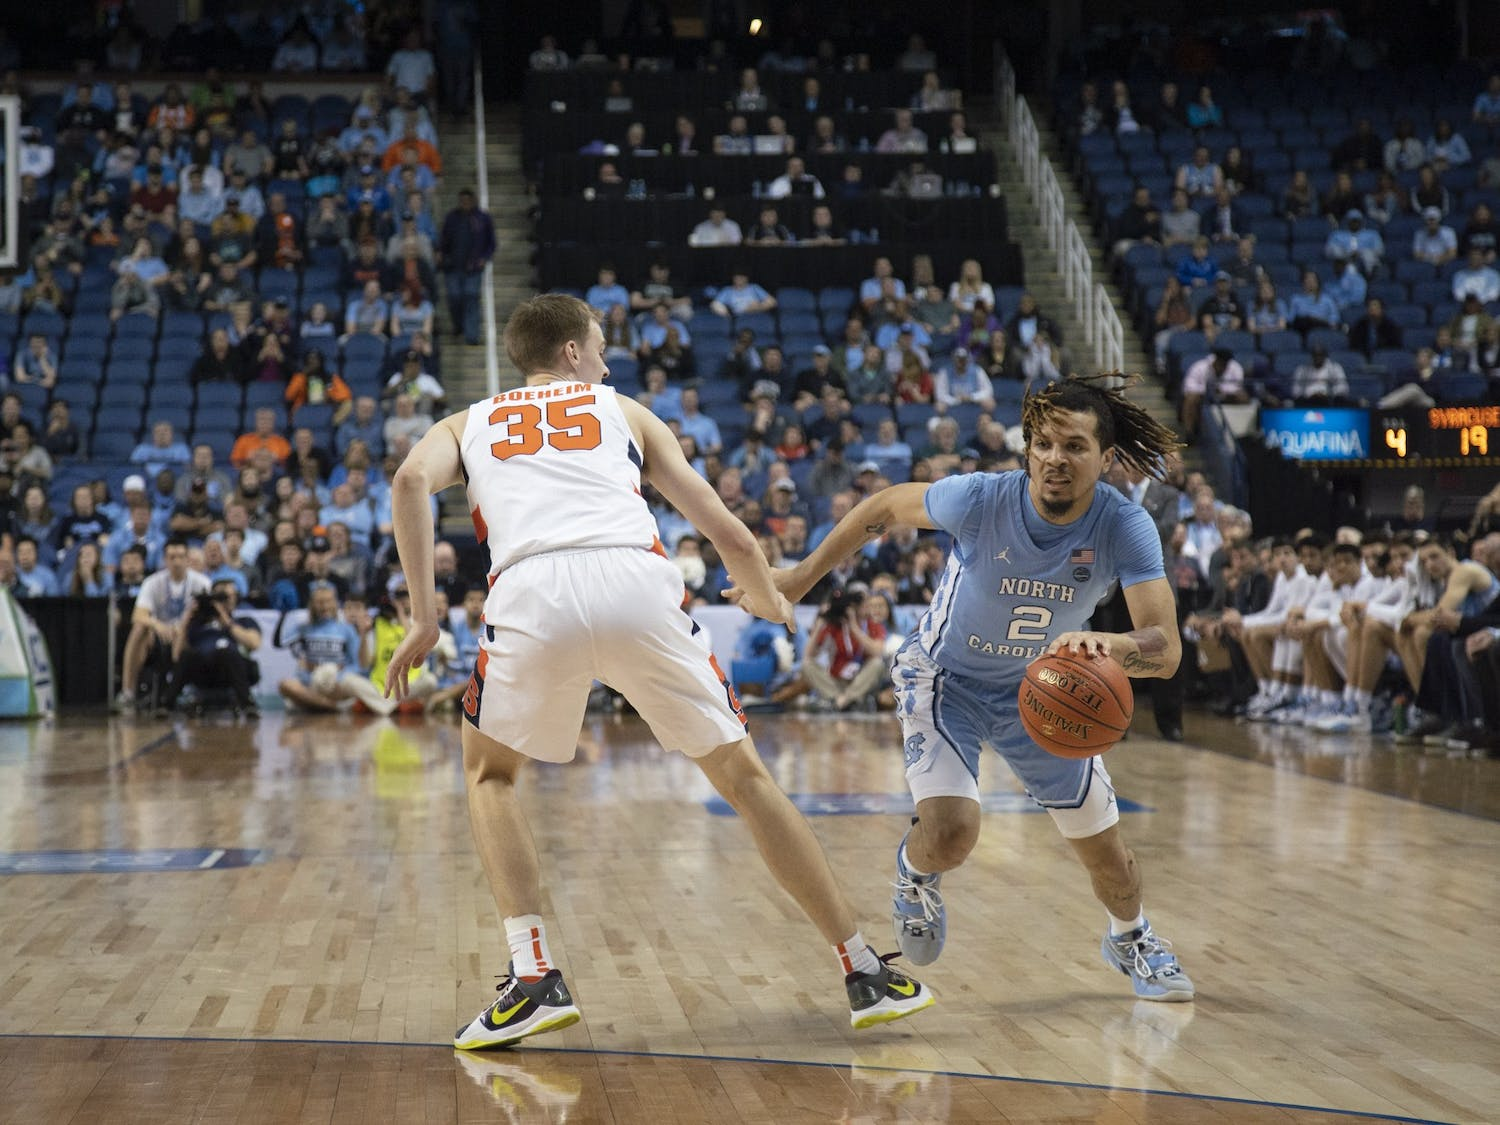 UNC first-year guard Cole Anthony (2) dribbles upcourt against Syracuse in the second round of the 2020 New York Life ACC Tournament at the Greensboro Coliseum, in Greensboro, N.C., on Wednesday, March 11, 2020. UNC lost 81-53.